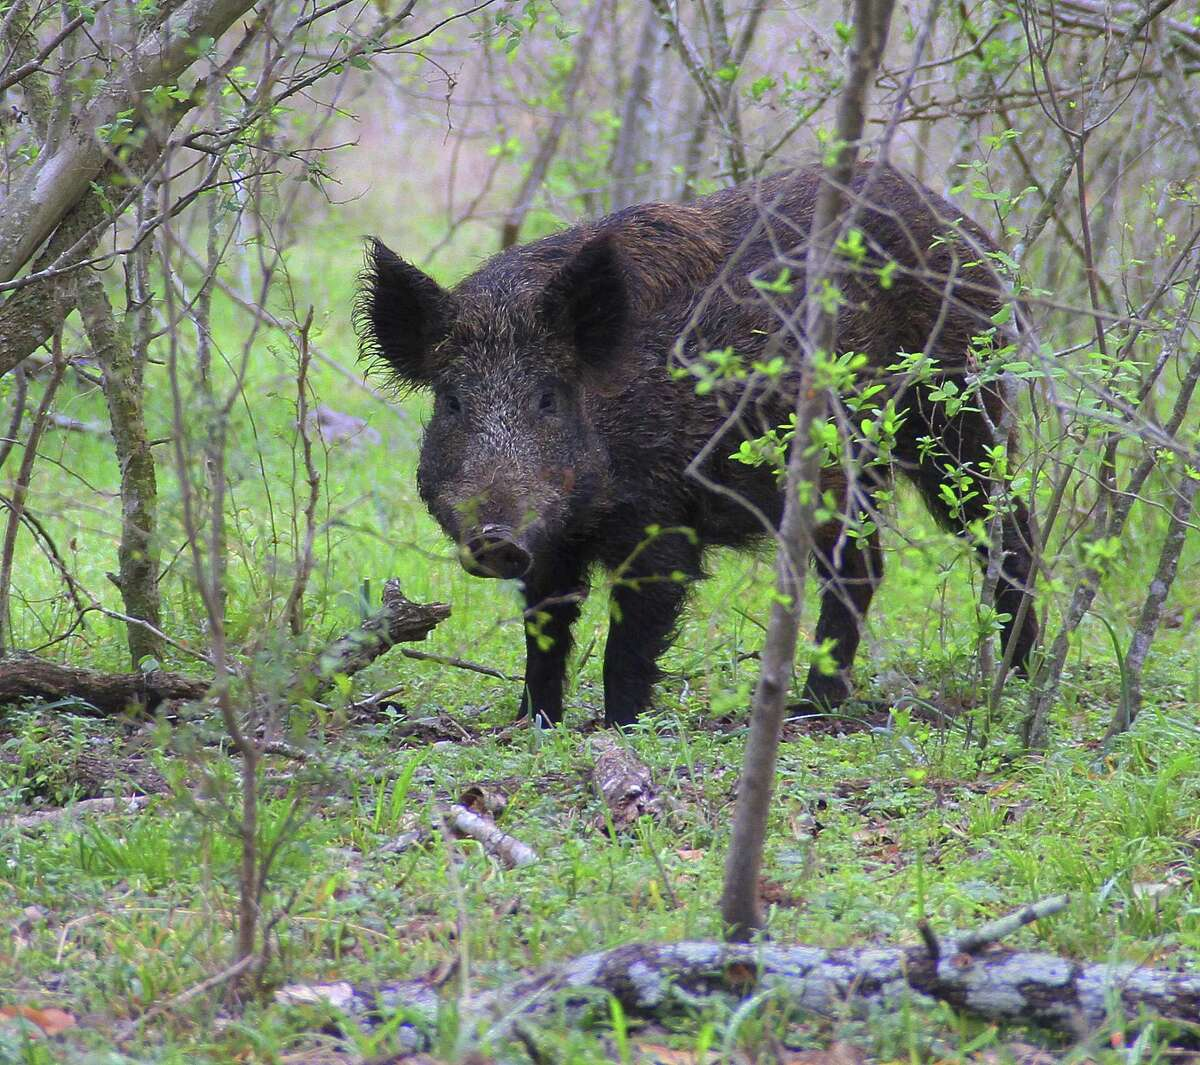 Cane Island neighbors have reported an uptick in sightings of feral hogs in the area recently.